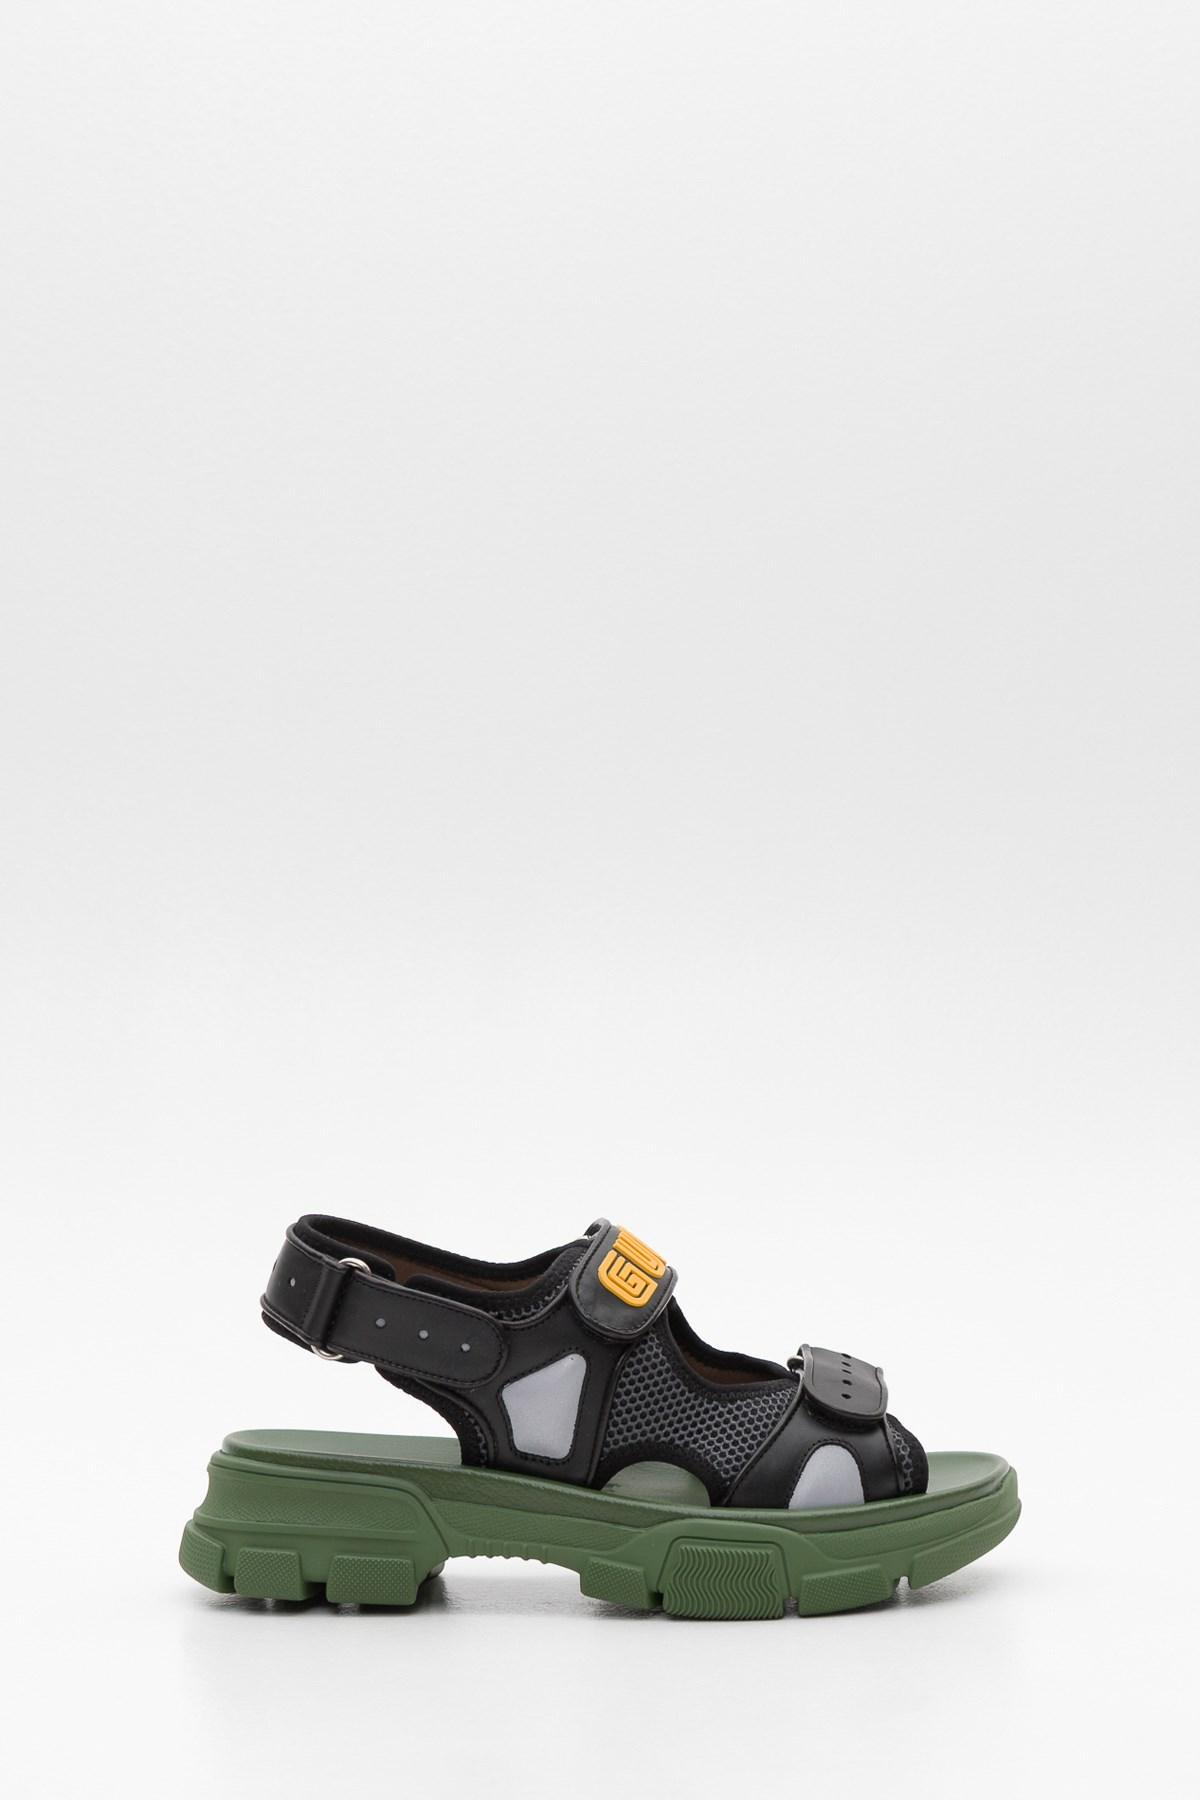 9fca3d1cc58 Lyst - Gucci Leather And Mesh Sandal in Black for Men